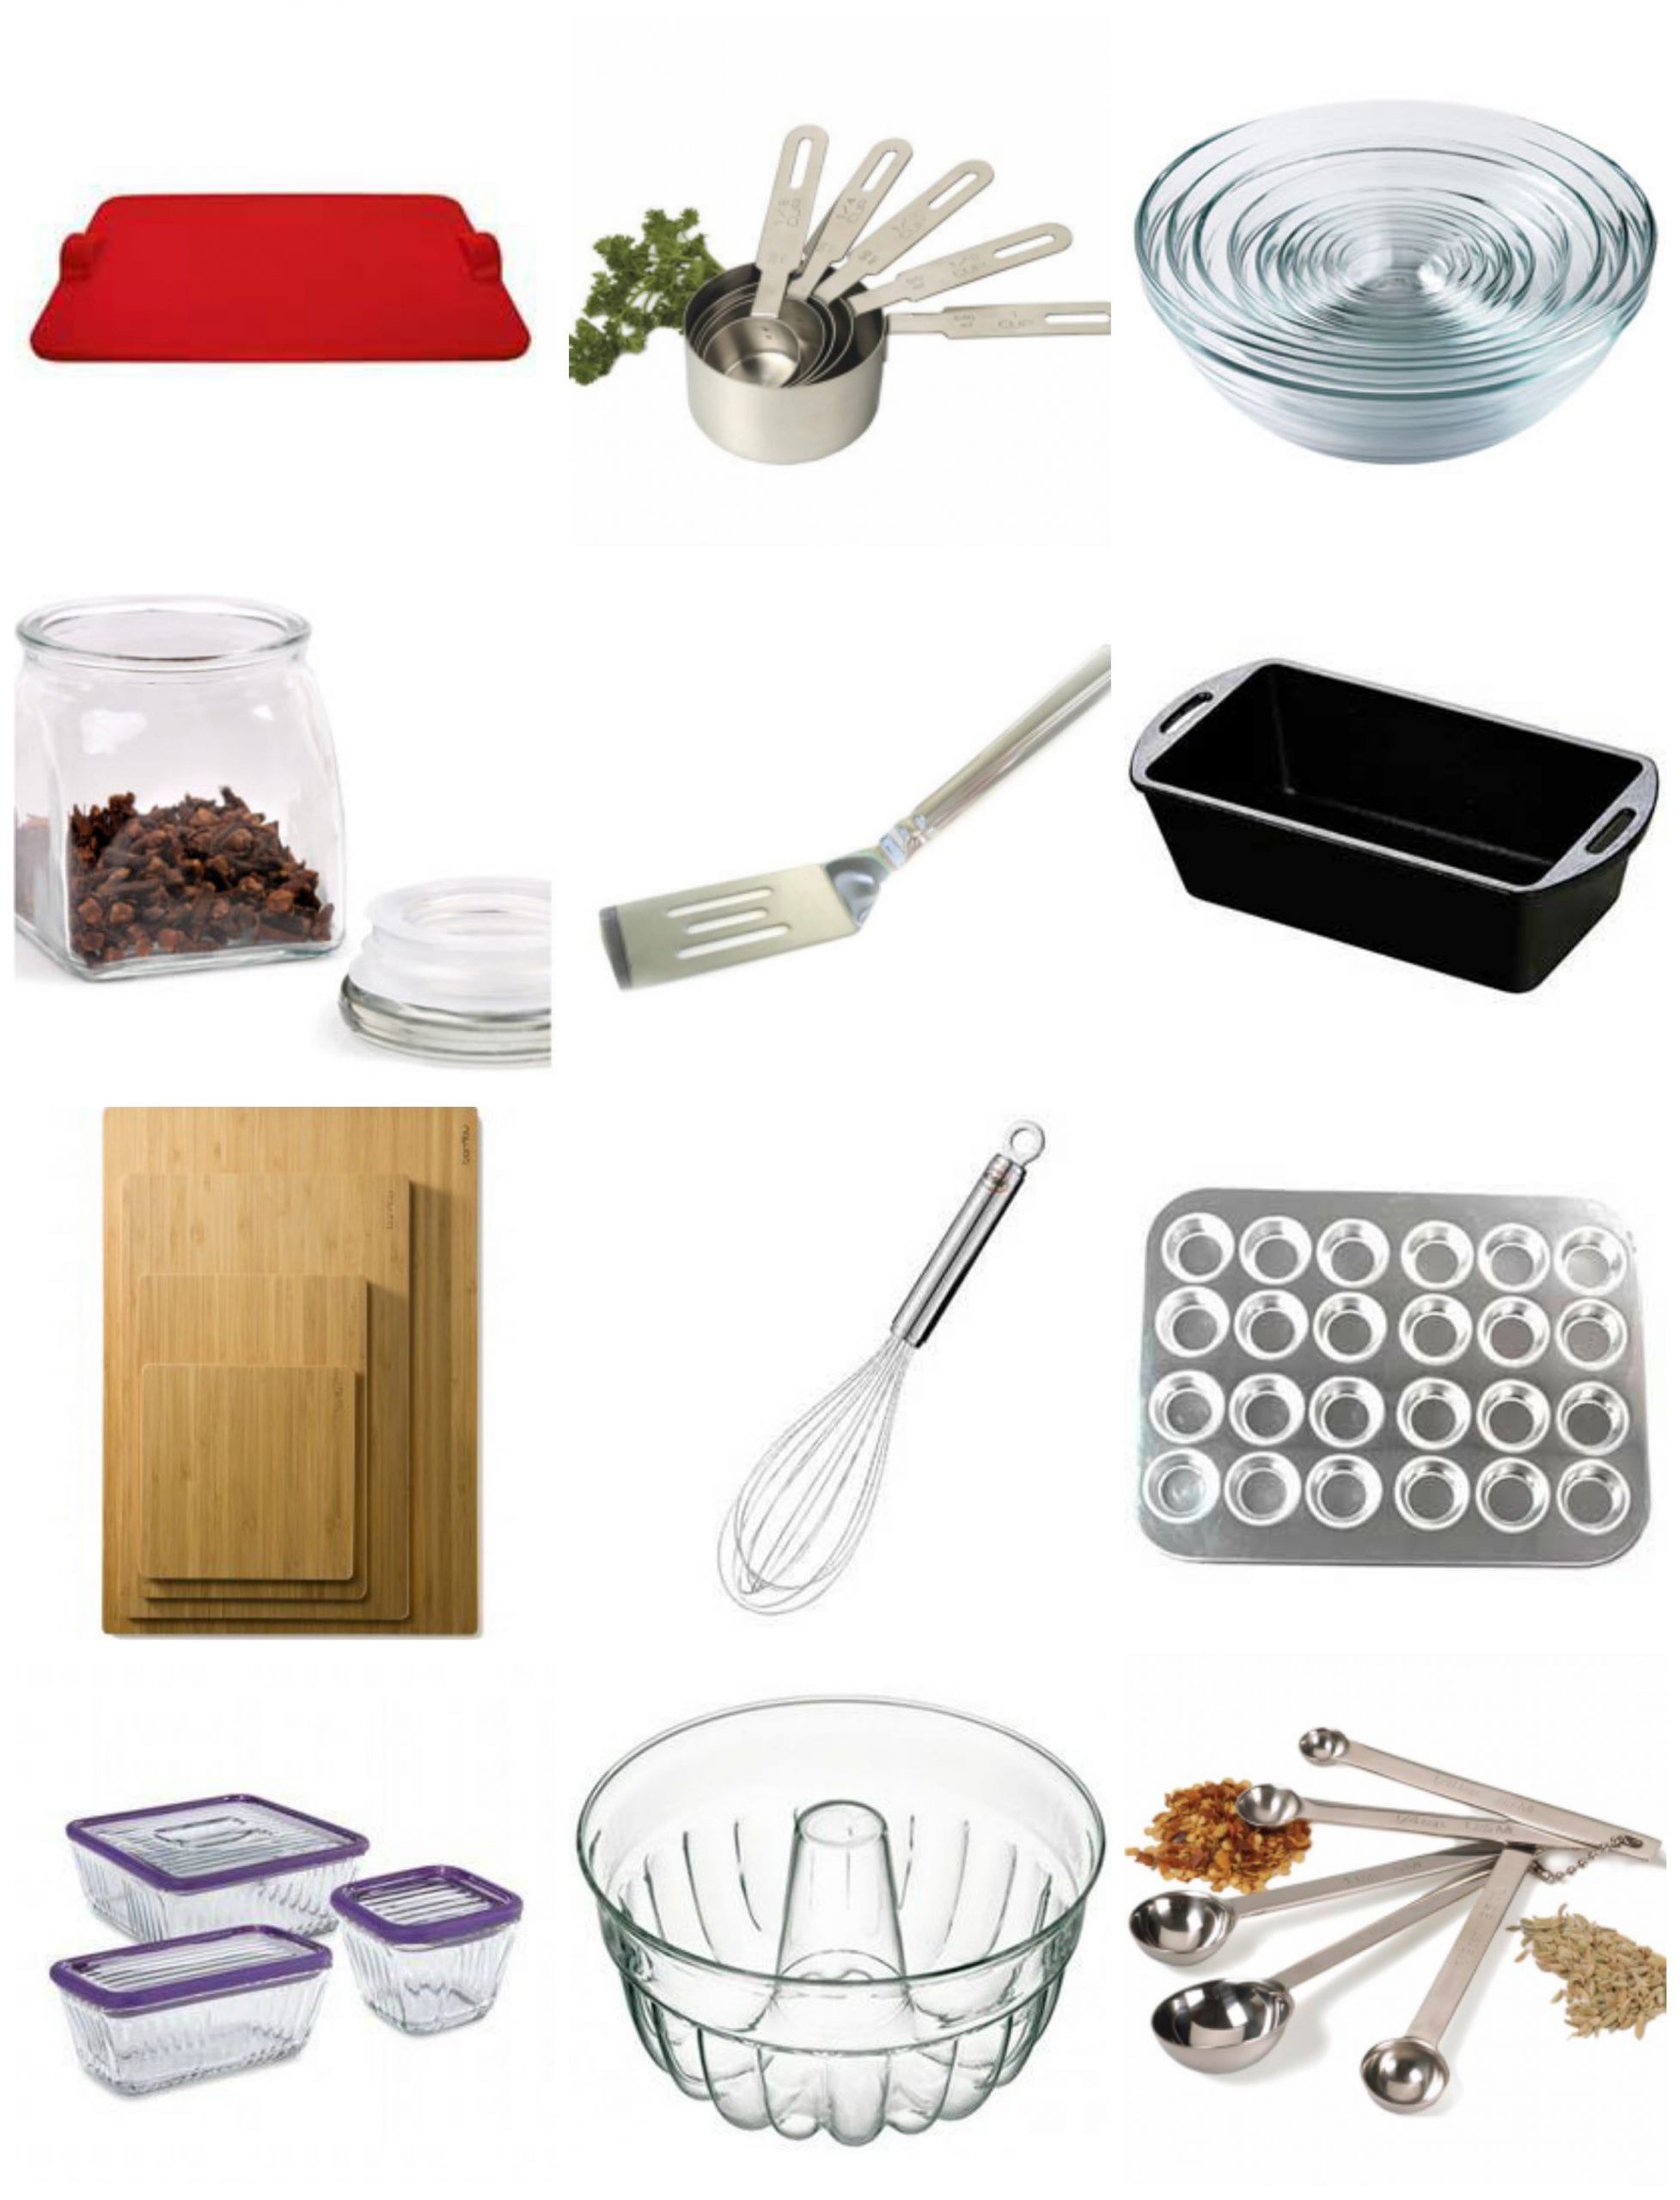 Fall Baking Essentials Amp 20 Recipes To Get You Started A